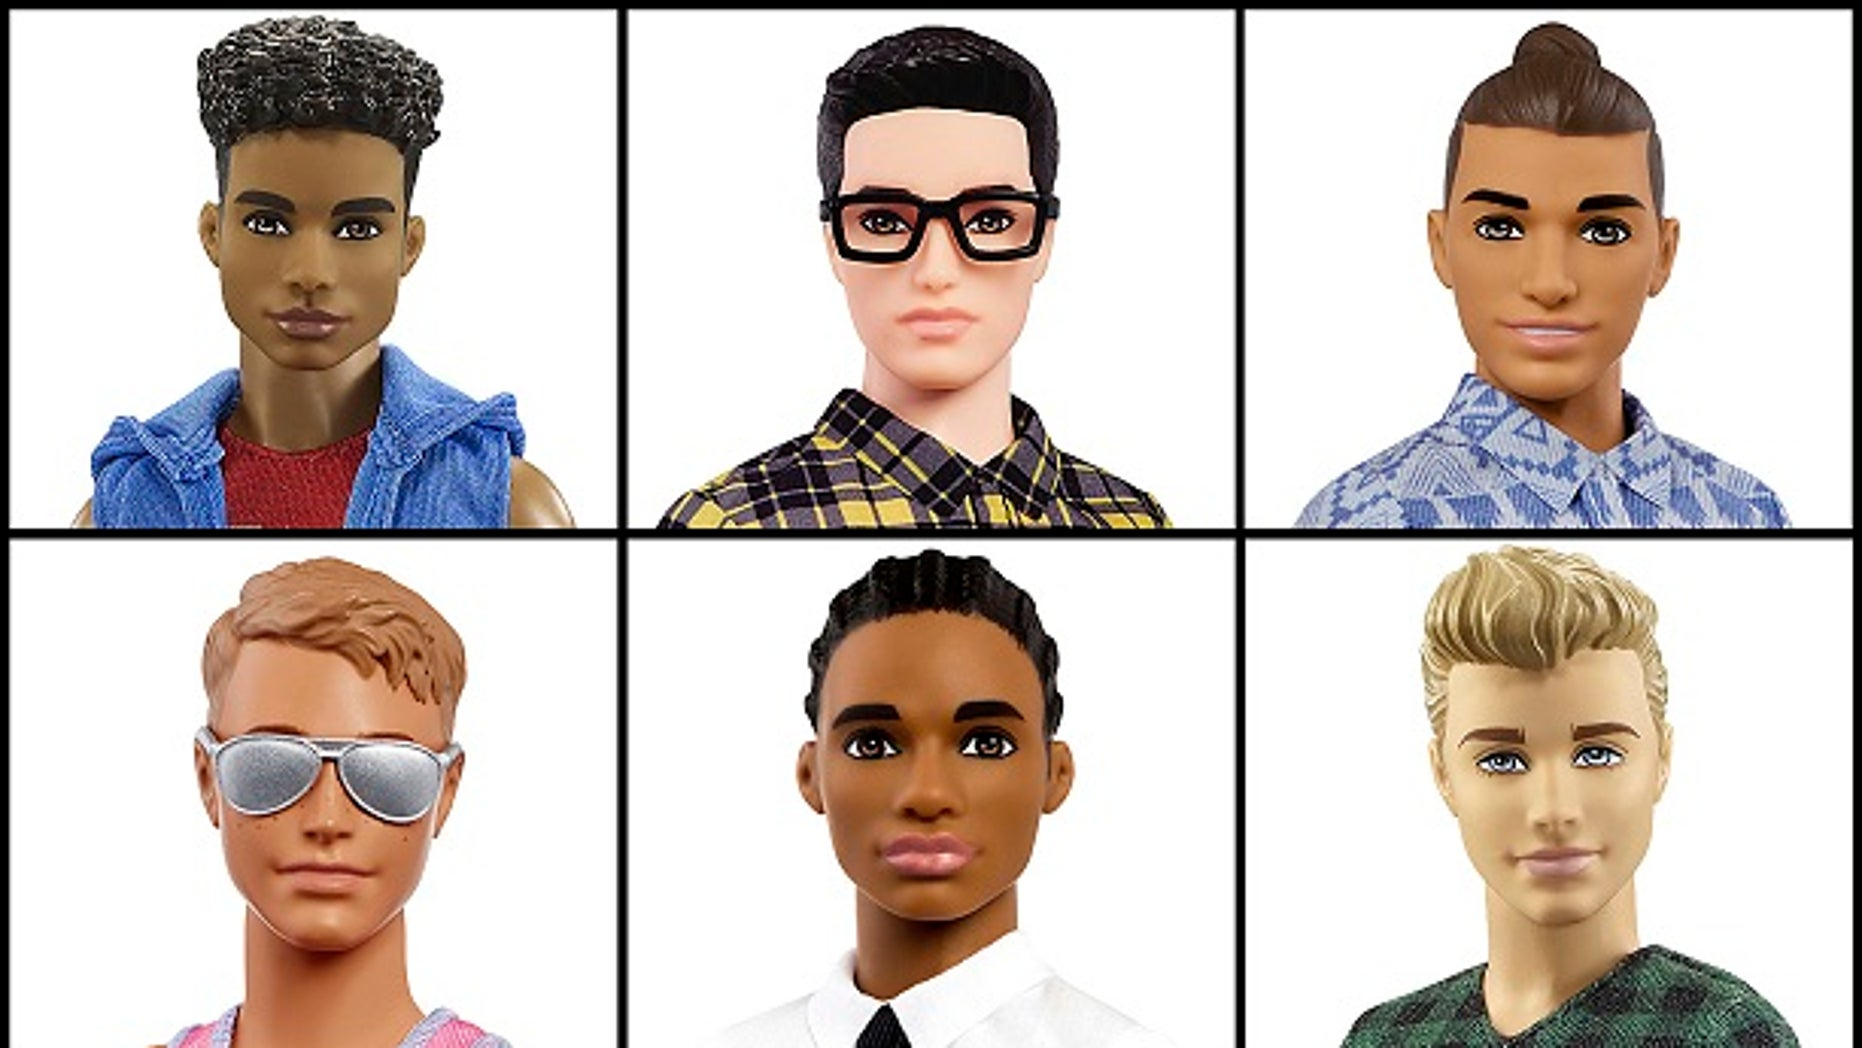 Mattel has launched a new line of Ken dolls on Tuesday. The dolls feature Ken sporting different hairstyles, skin tones and physiques.